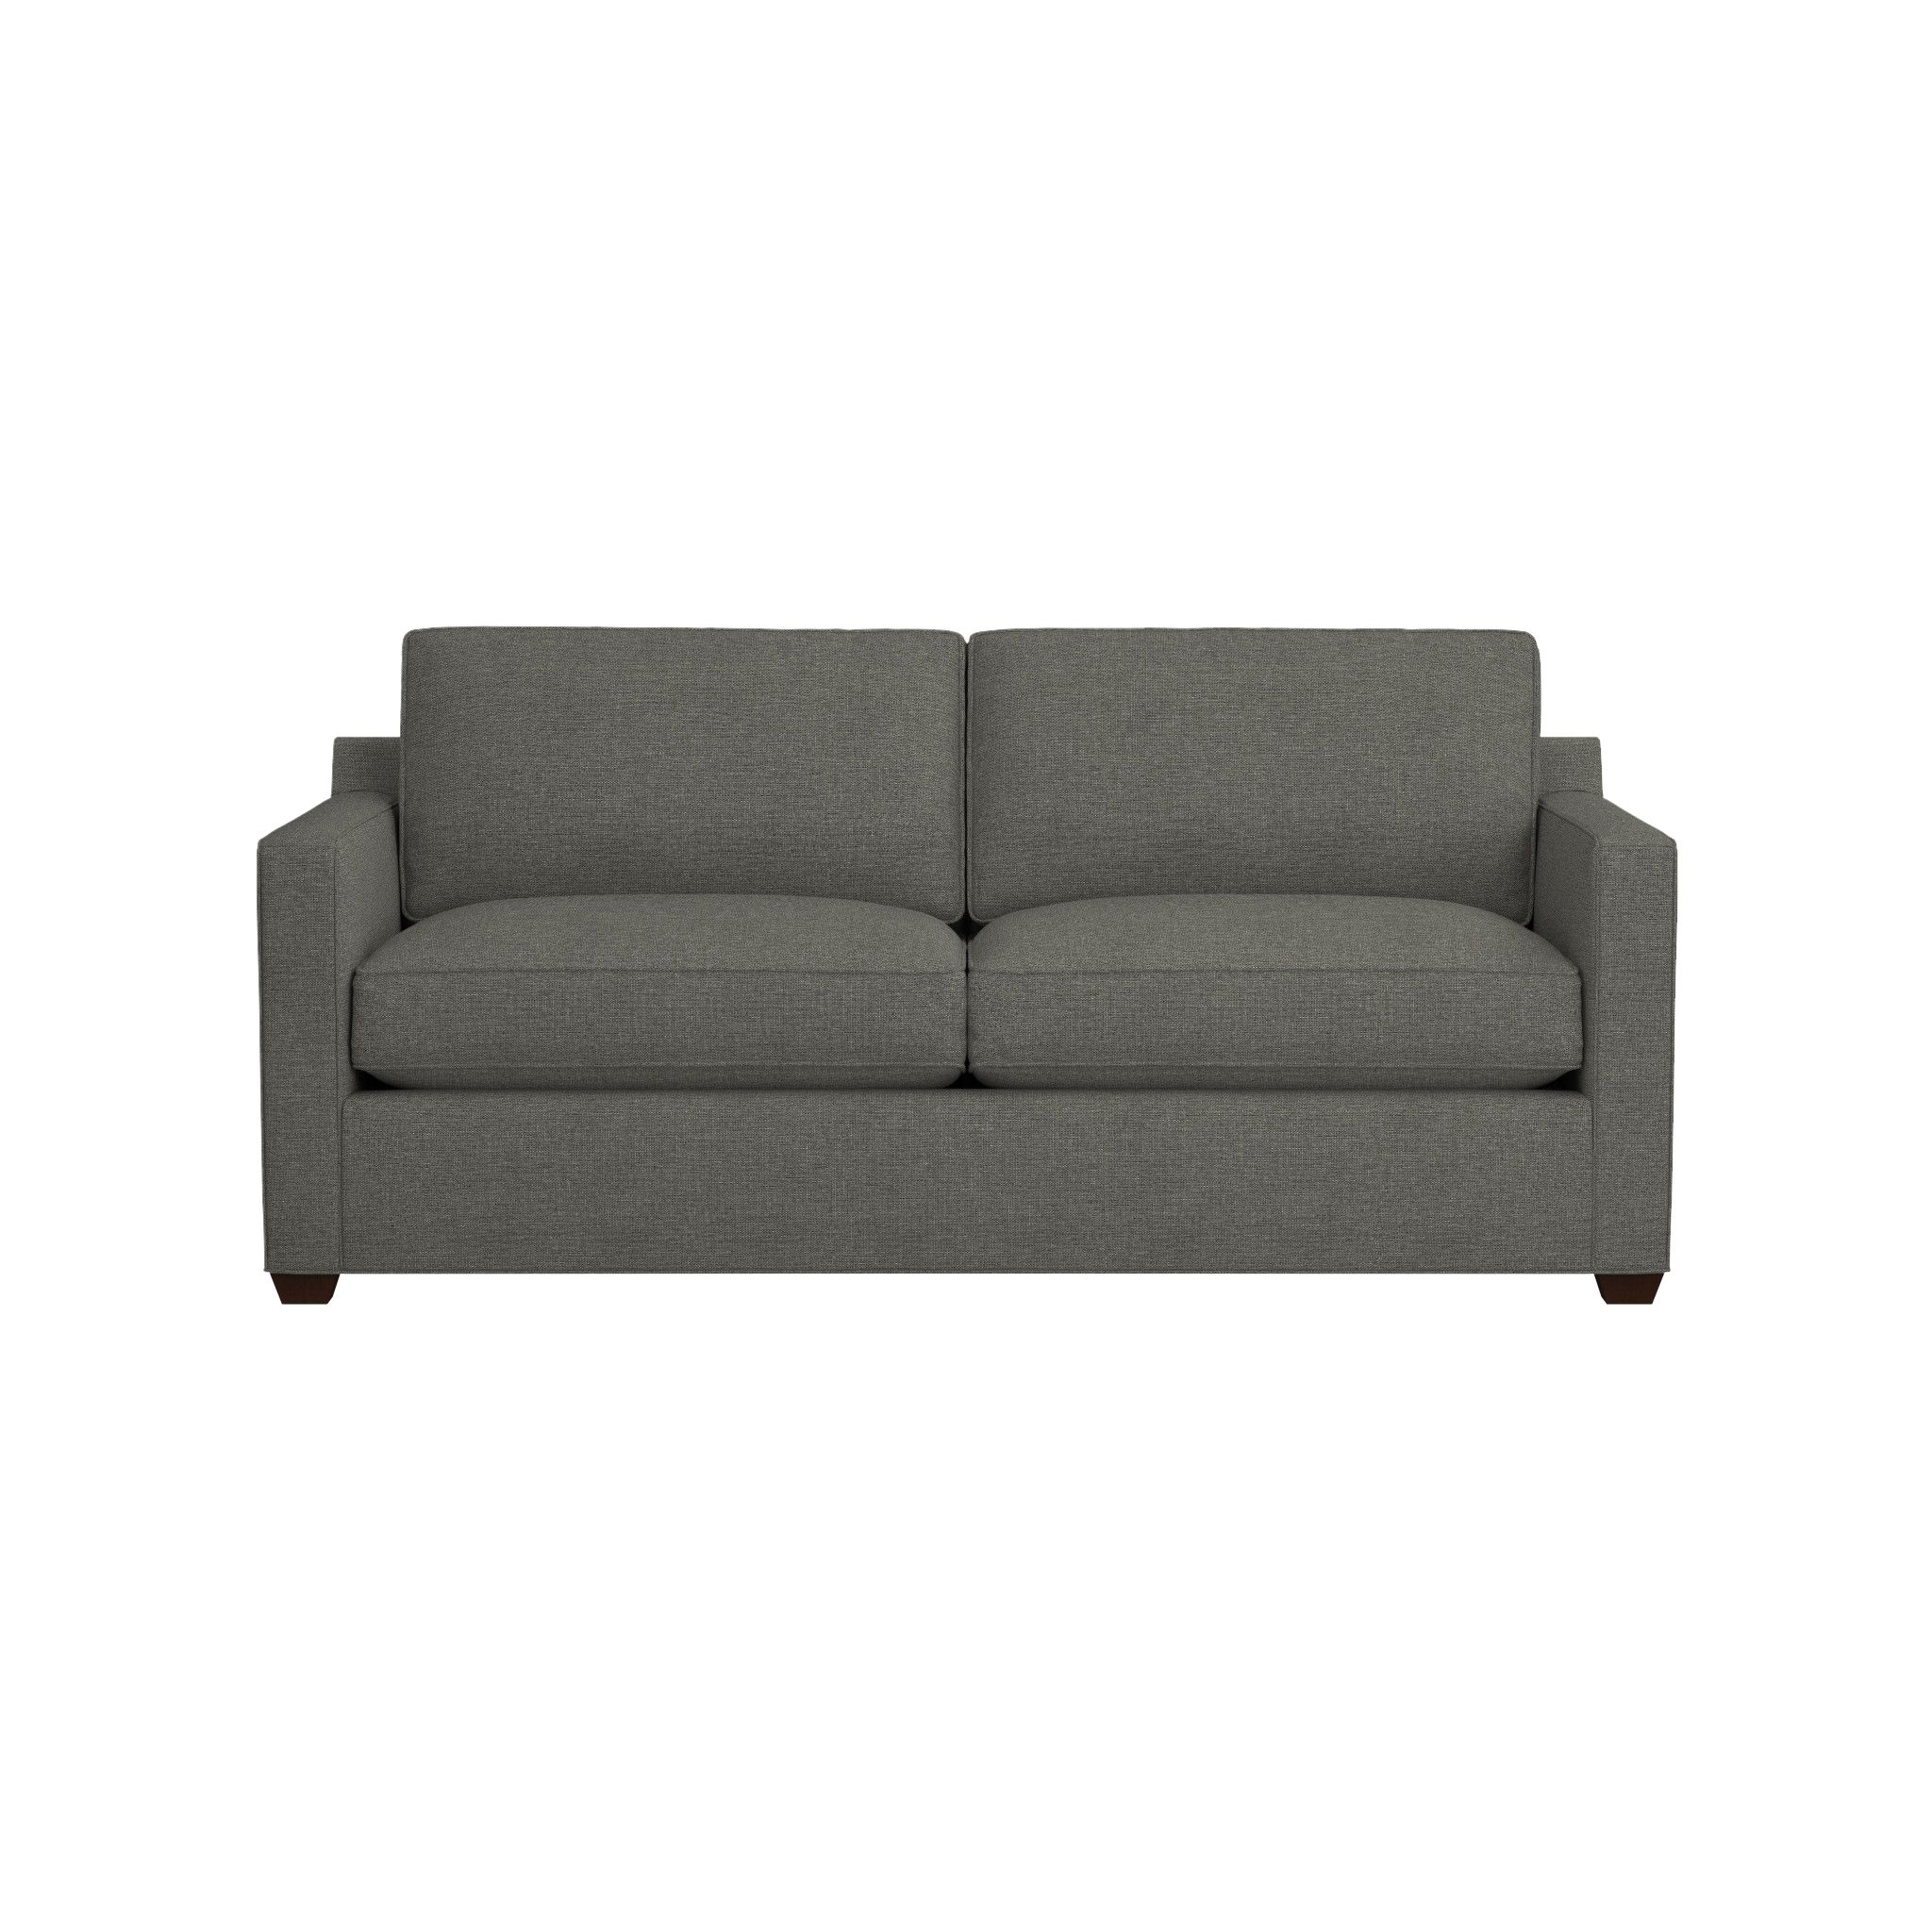 Davis Down Blend Sofa | Crate And Barrel regarding Crate And Barrel Sofa Sleepers (Image 7 of 15)